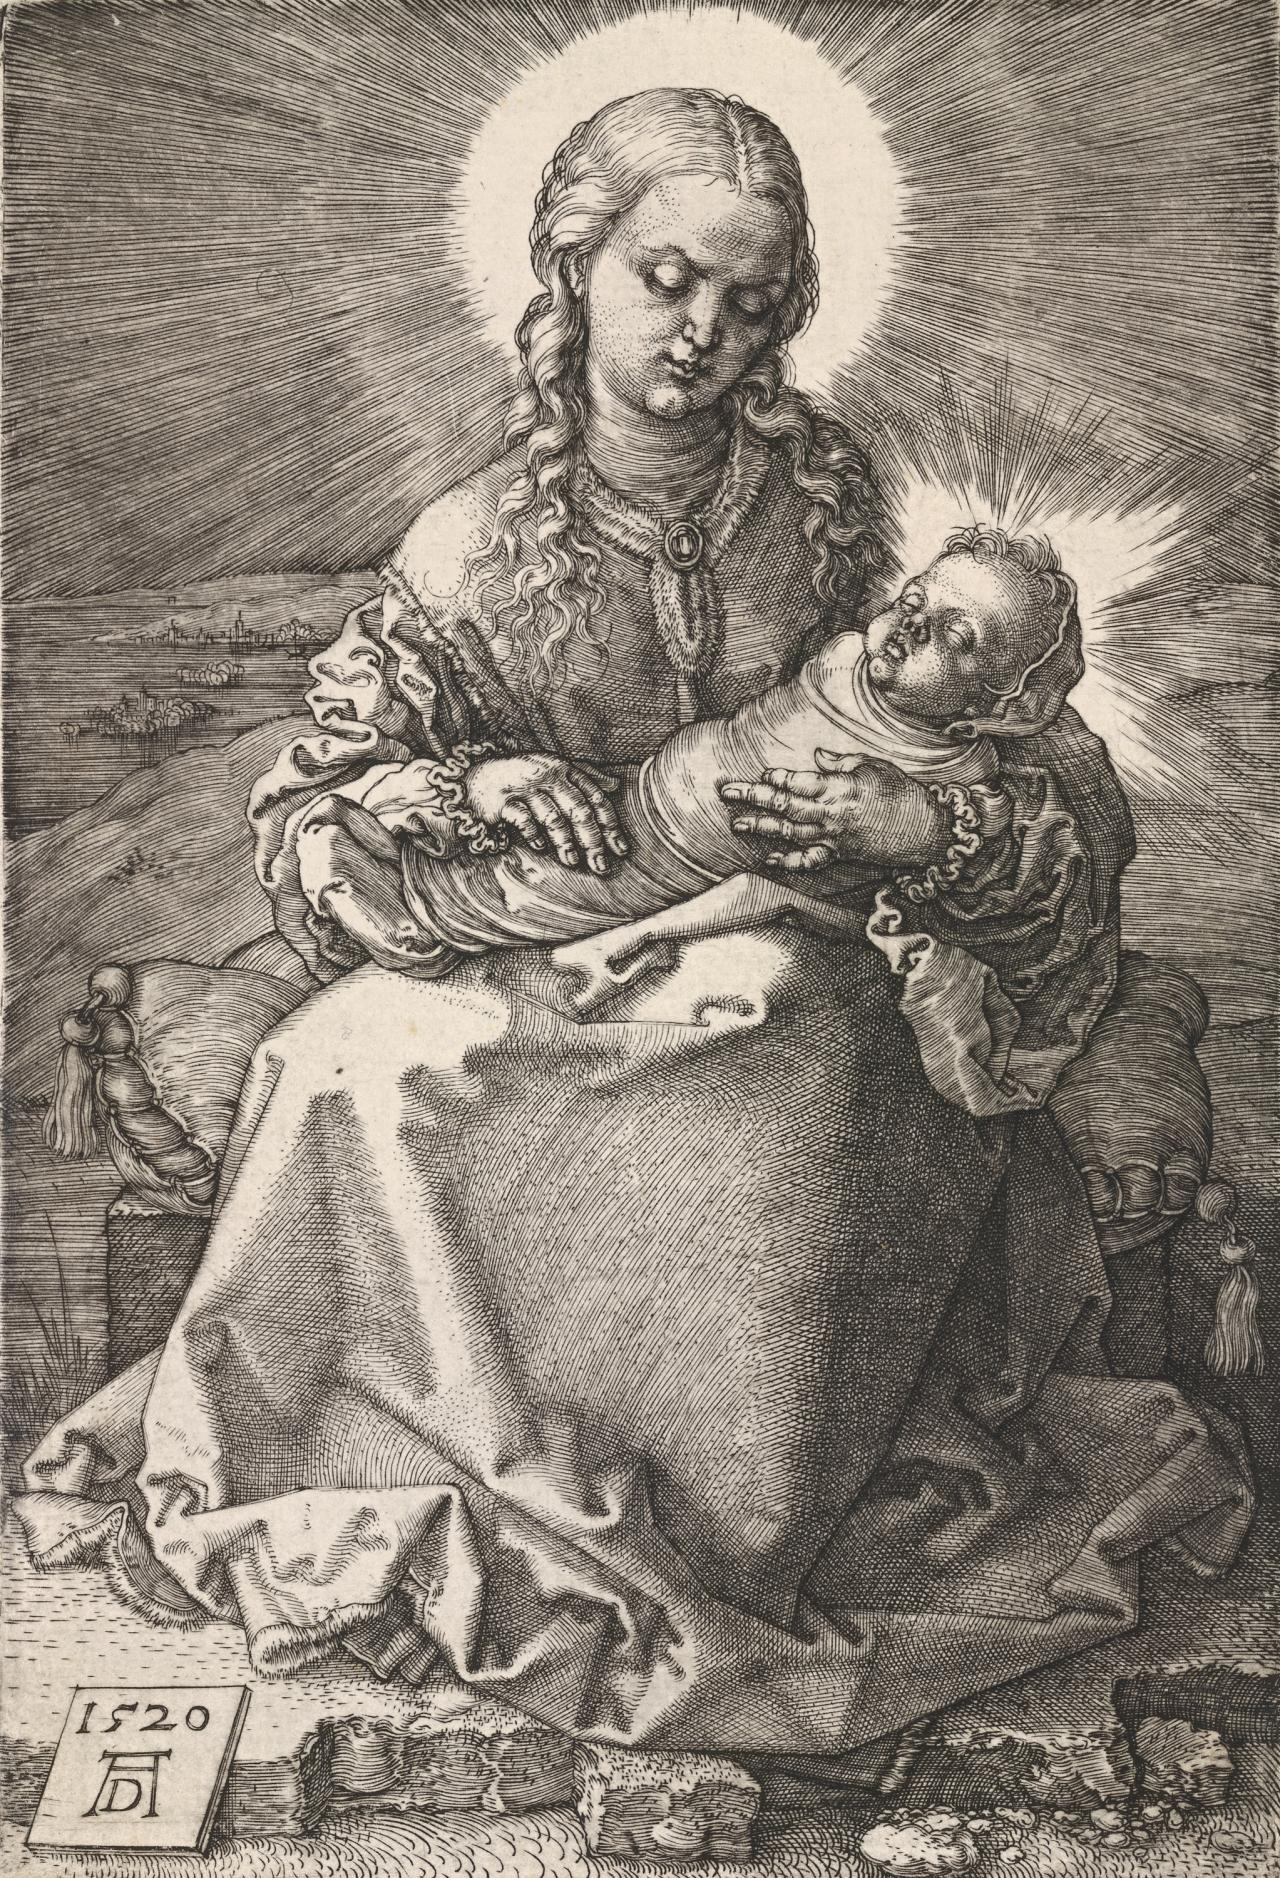 The Madonna with the swaddled infant